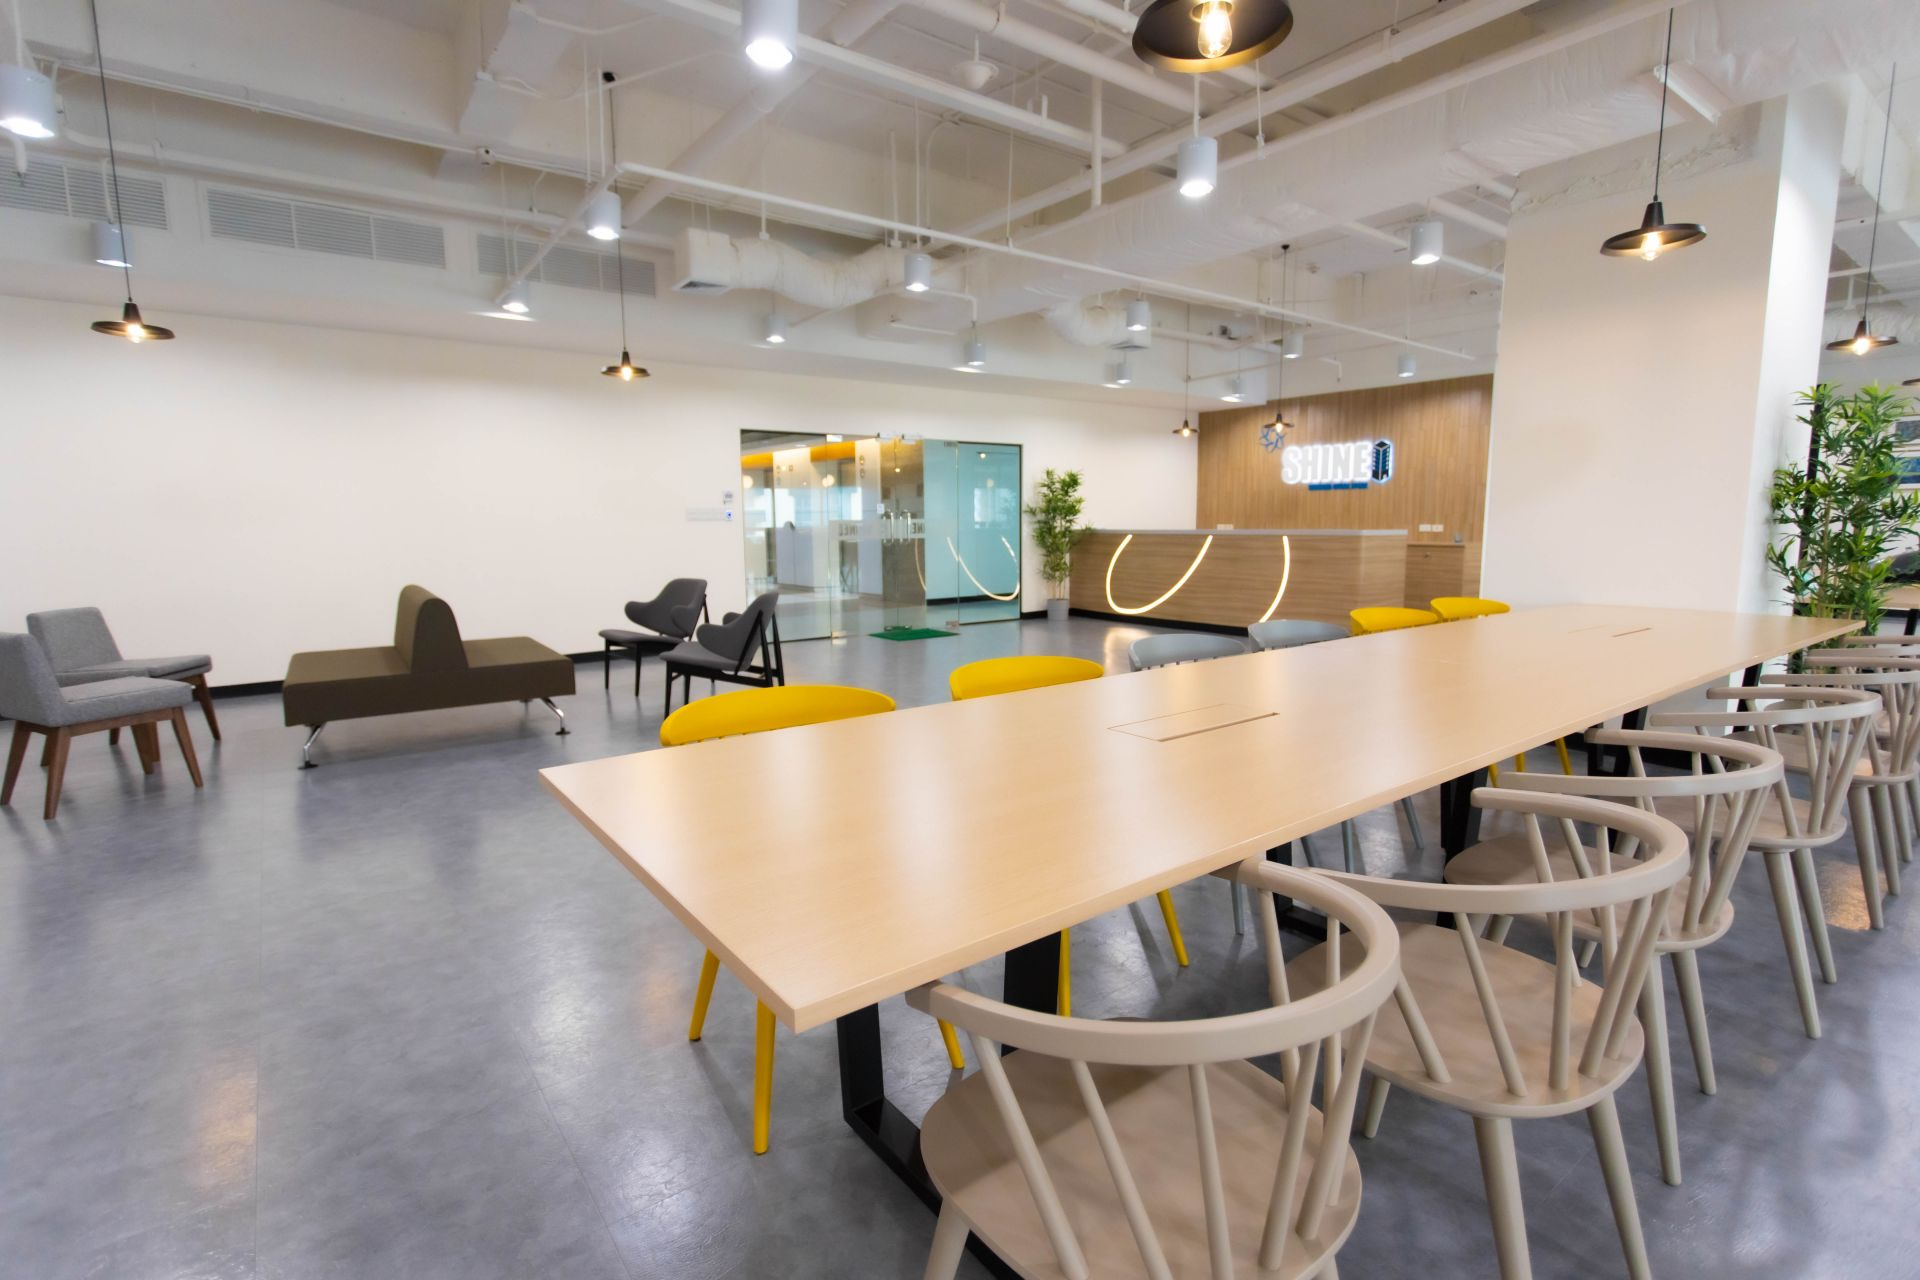 Shinei Serviced Office Space & Coworking, Bangkok